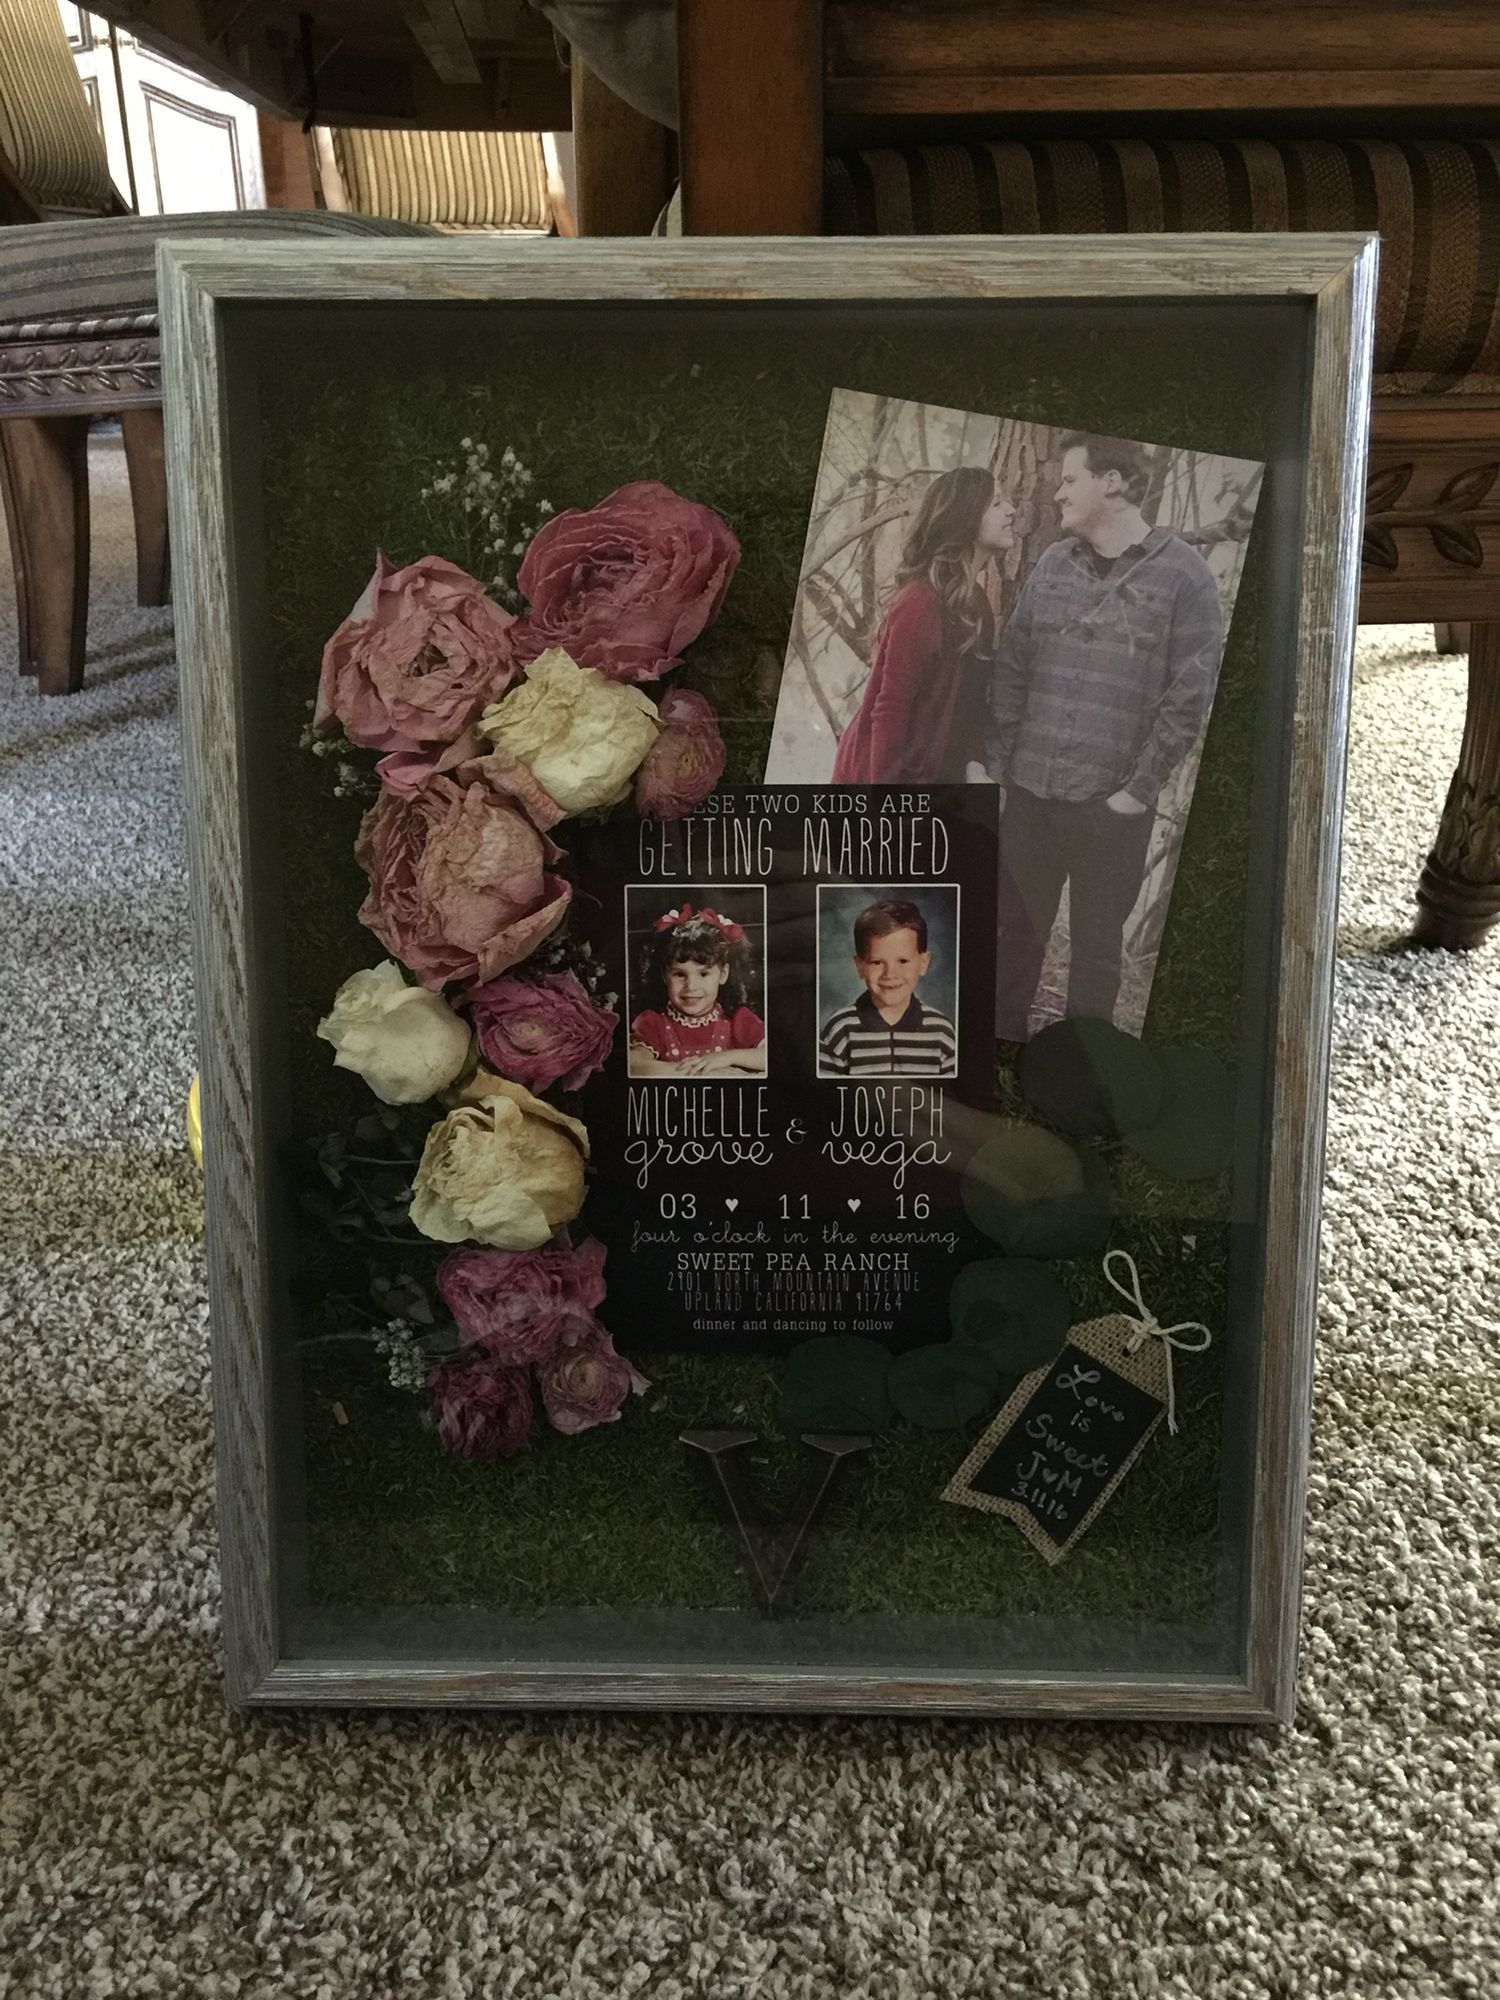 Made this shadow box for my daughter, using her wedding